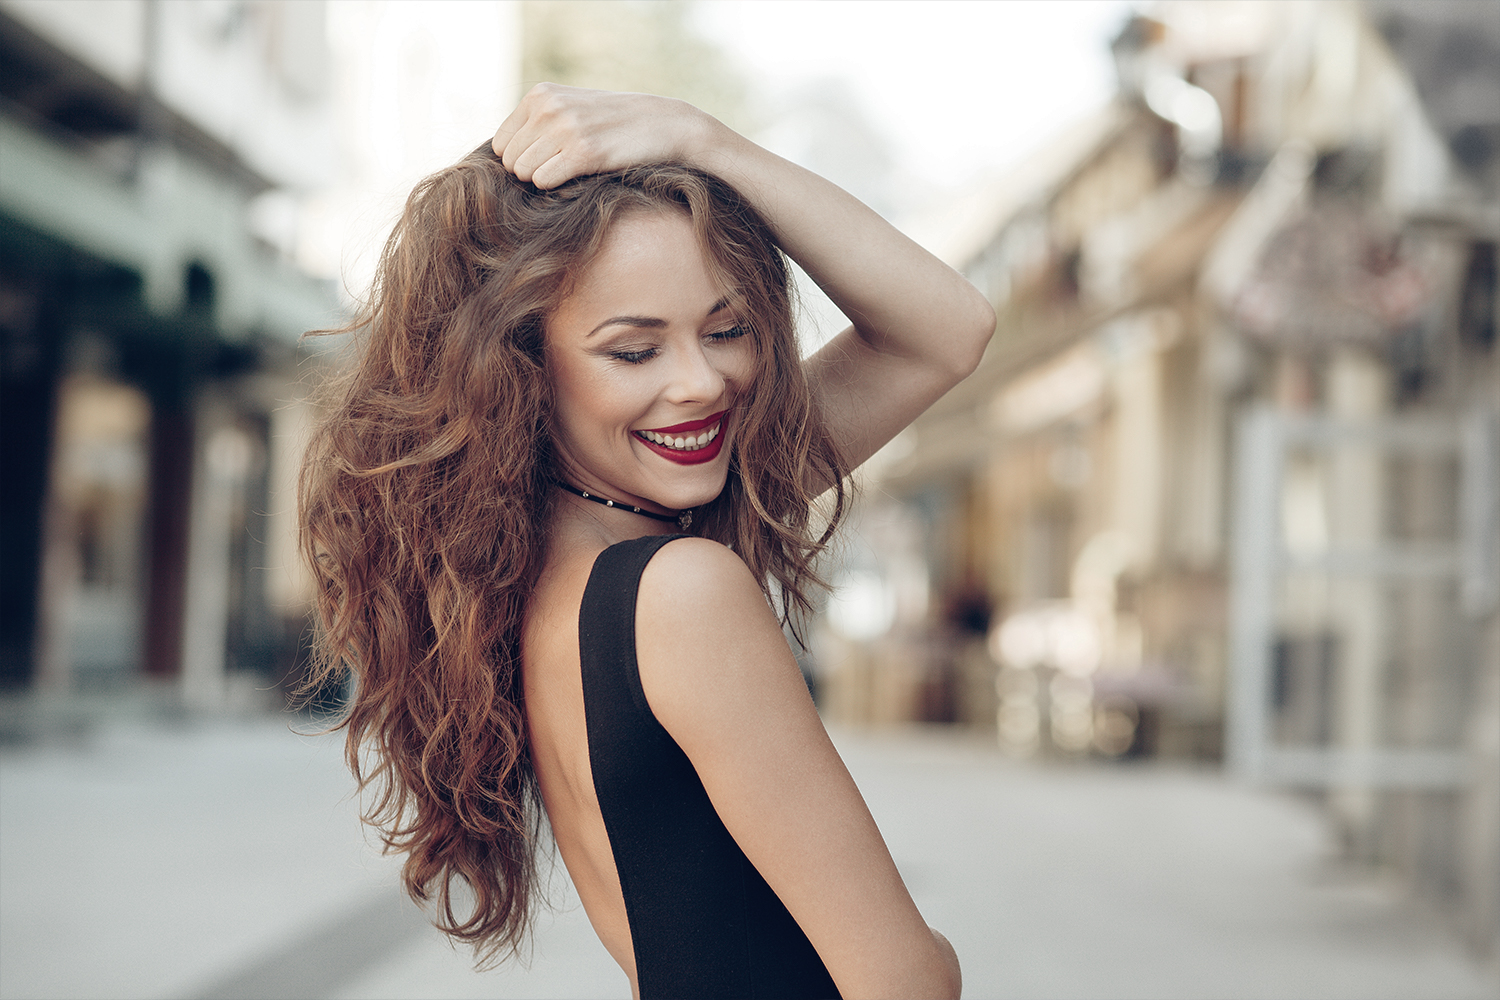 Woman with red lipstick.jpg